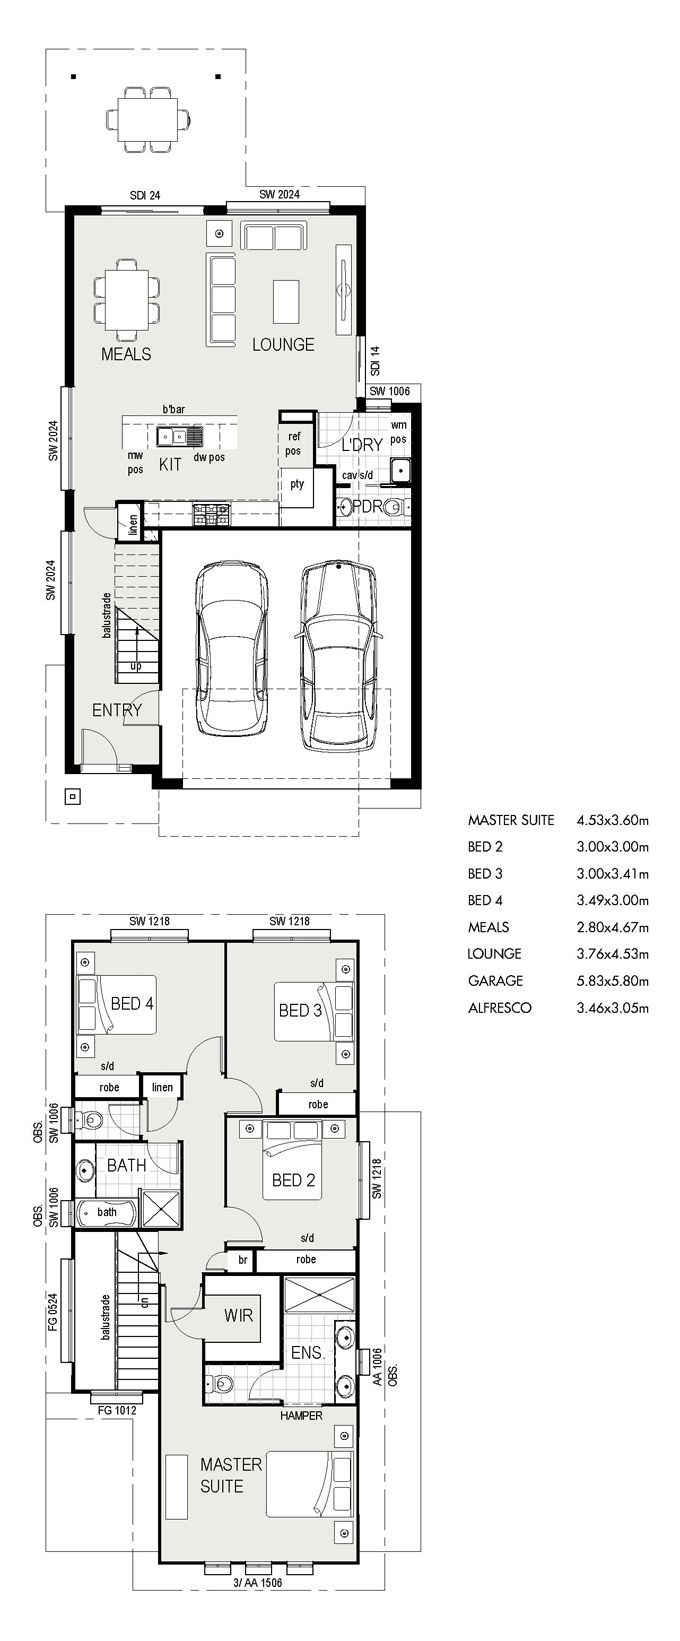 Pin By Indra Hermawan On House Plans Architecture Plan House Plans Architecture